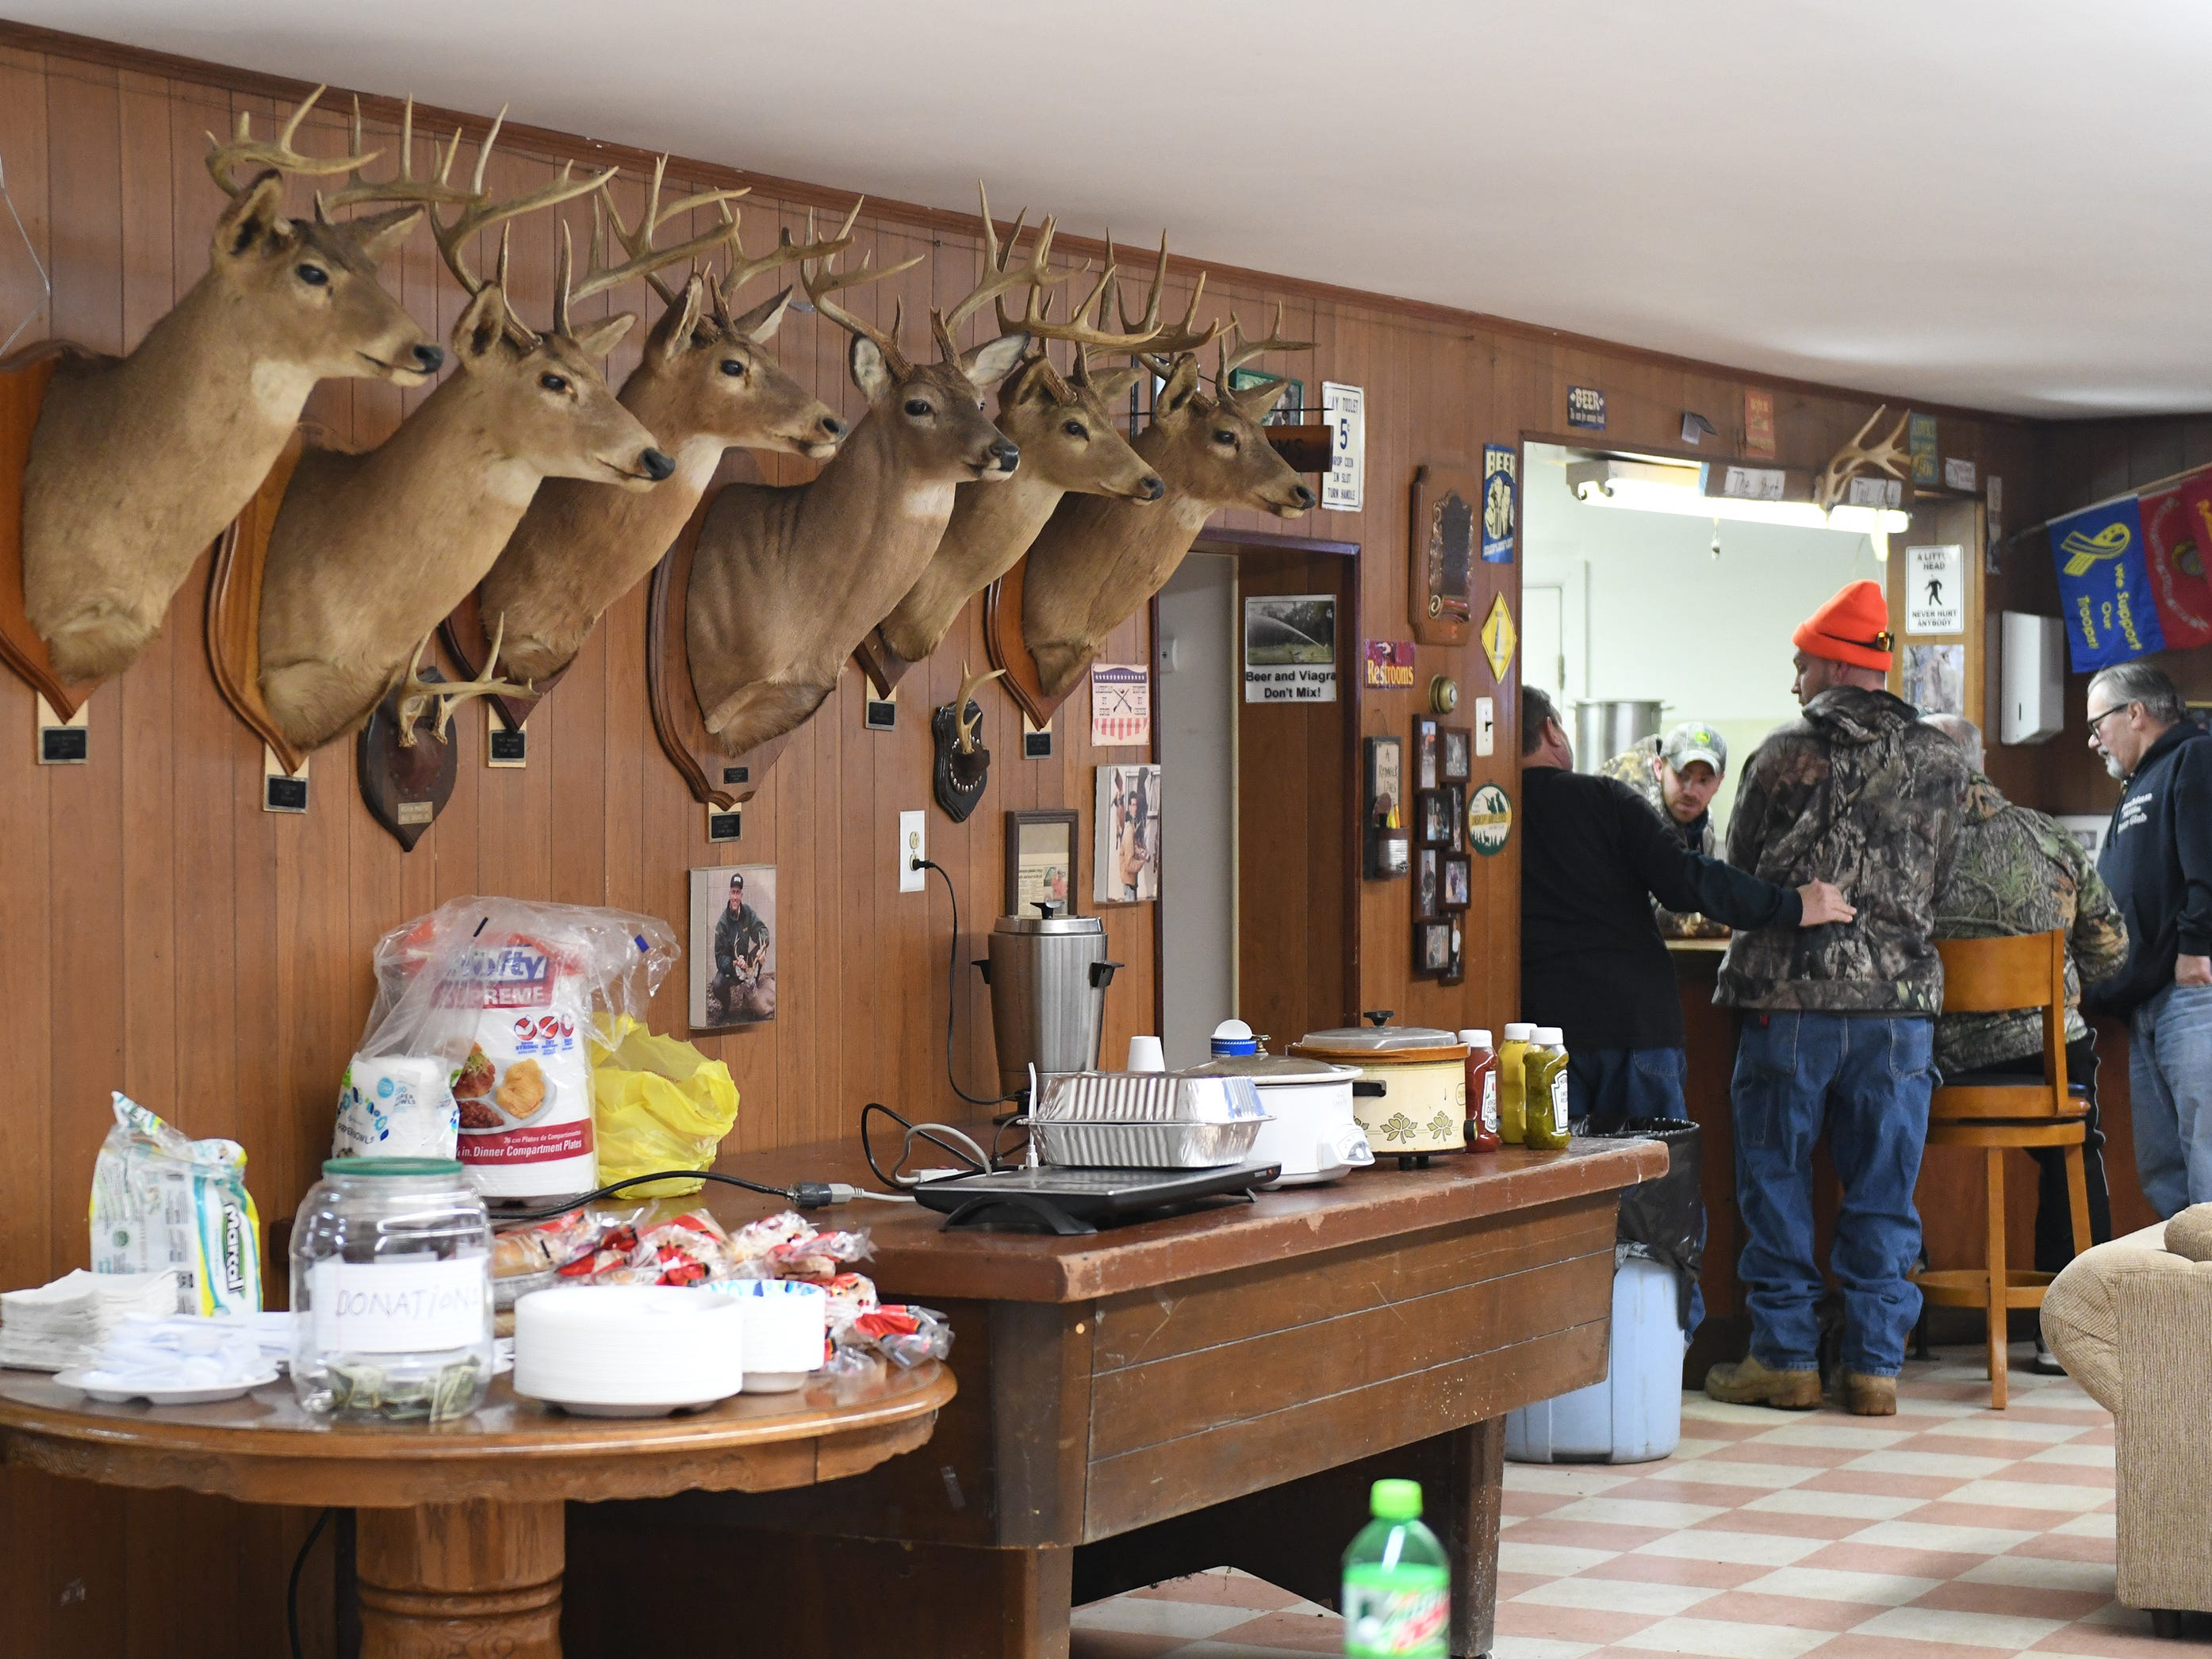 Deer mounts adorn the walls at the Inskip Antler Hunting Club in Winslow Township on Saturday, Feb. 16, 2019. The club hosted the First Annual Family Squirrel Classic while activists protested outside.